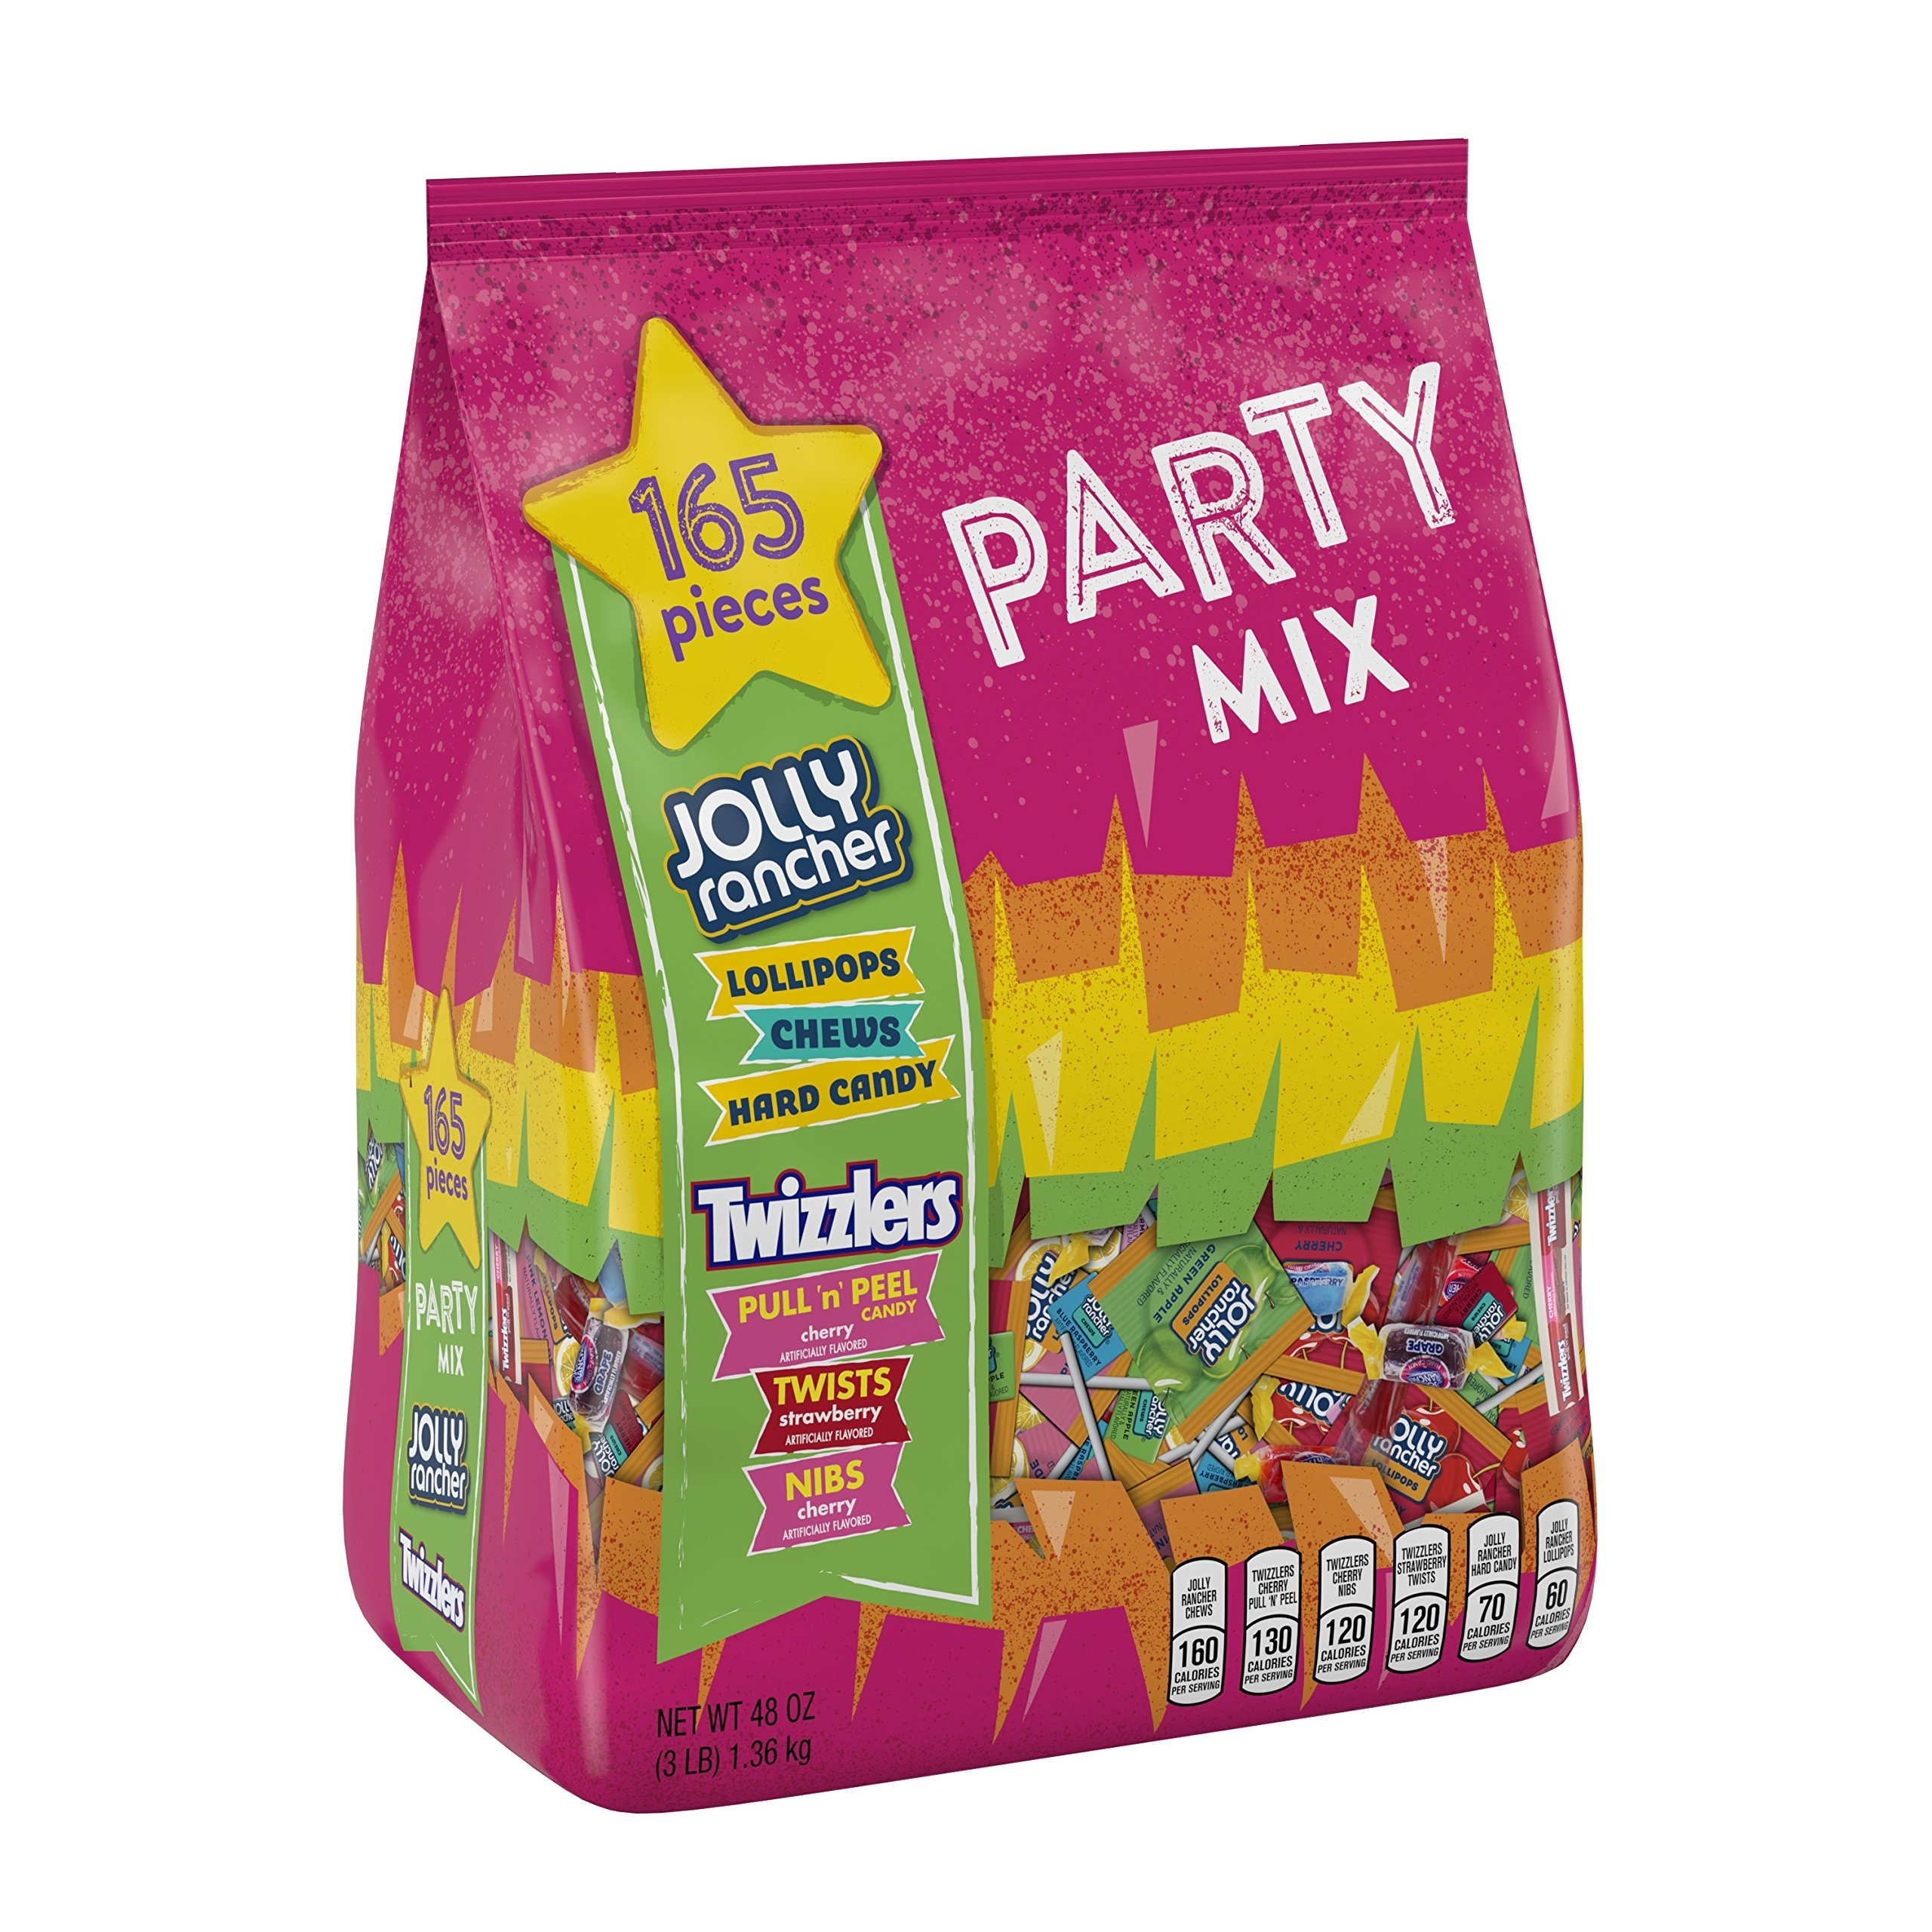 HERSHEY'S Halloween Candy Variety Mix, JOLLY RANCHER & TWIZZLERS, 165 Pieces by HERSHEY'S